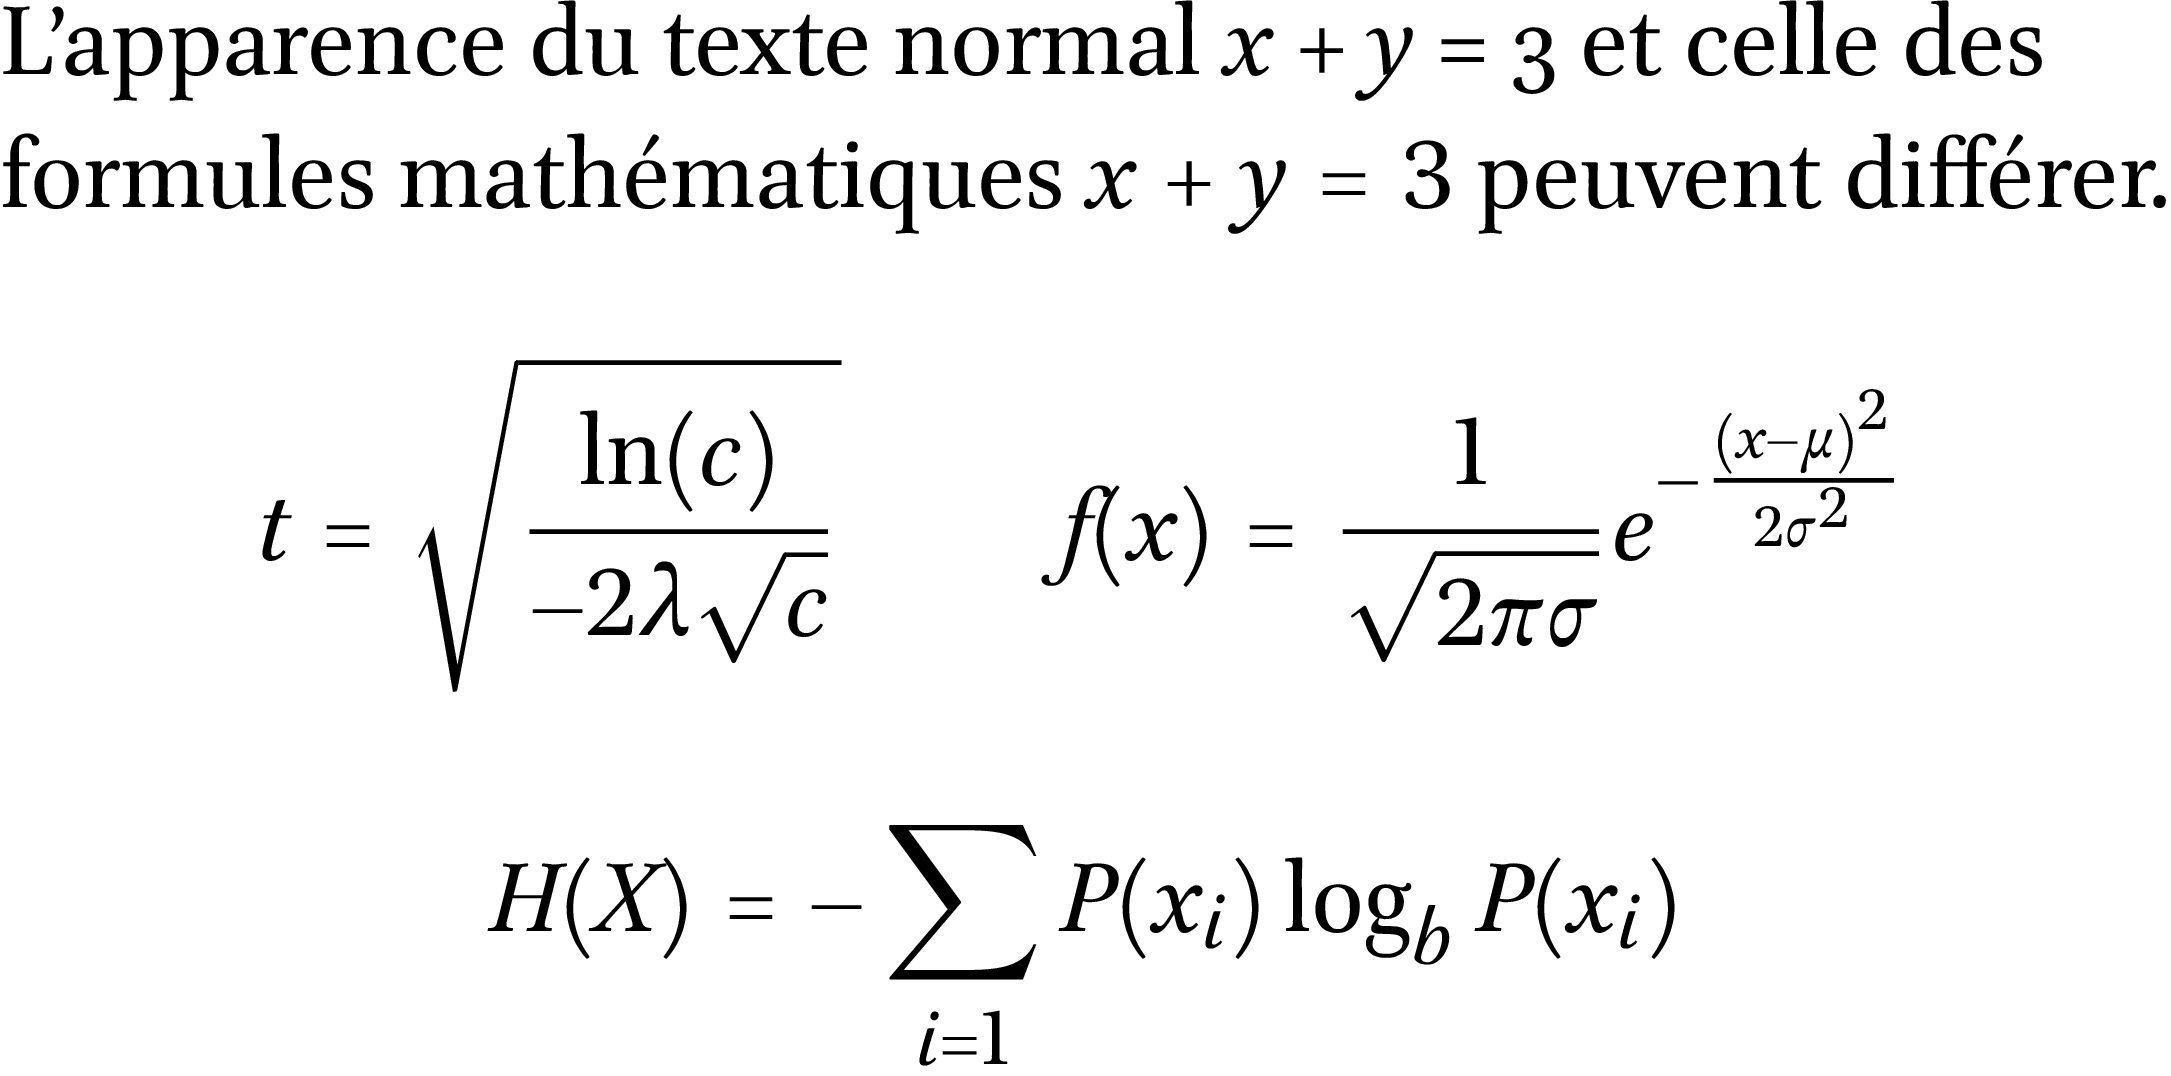 mathastext